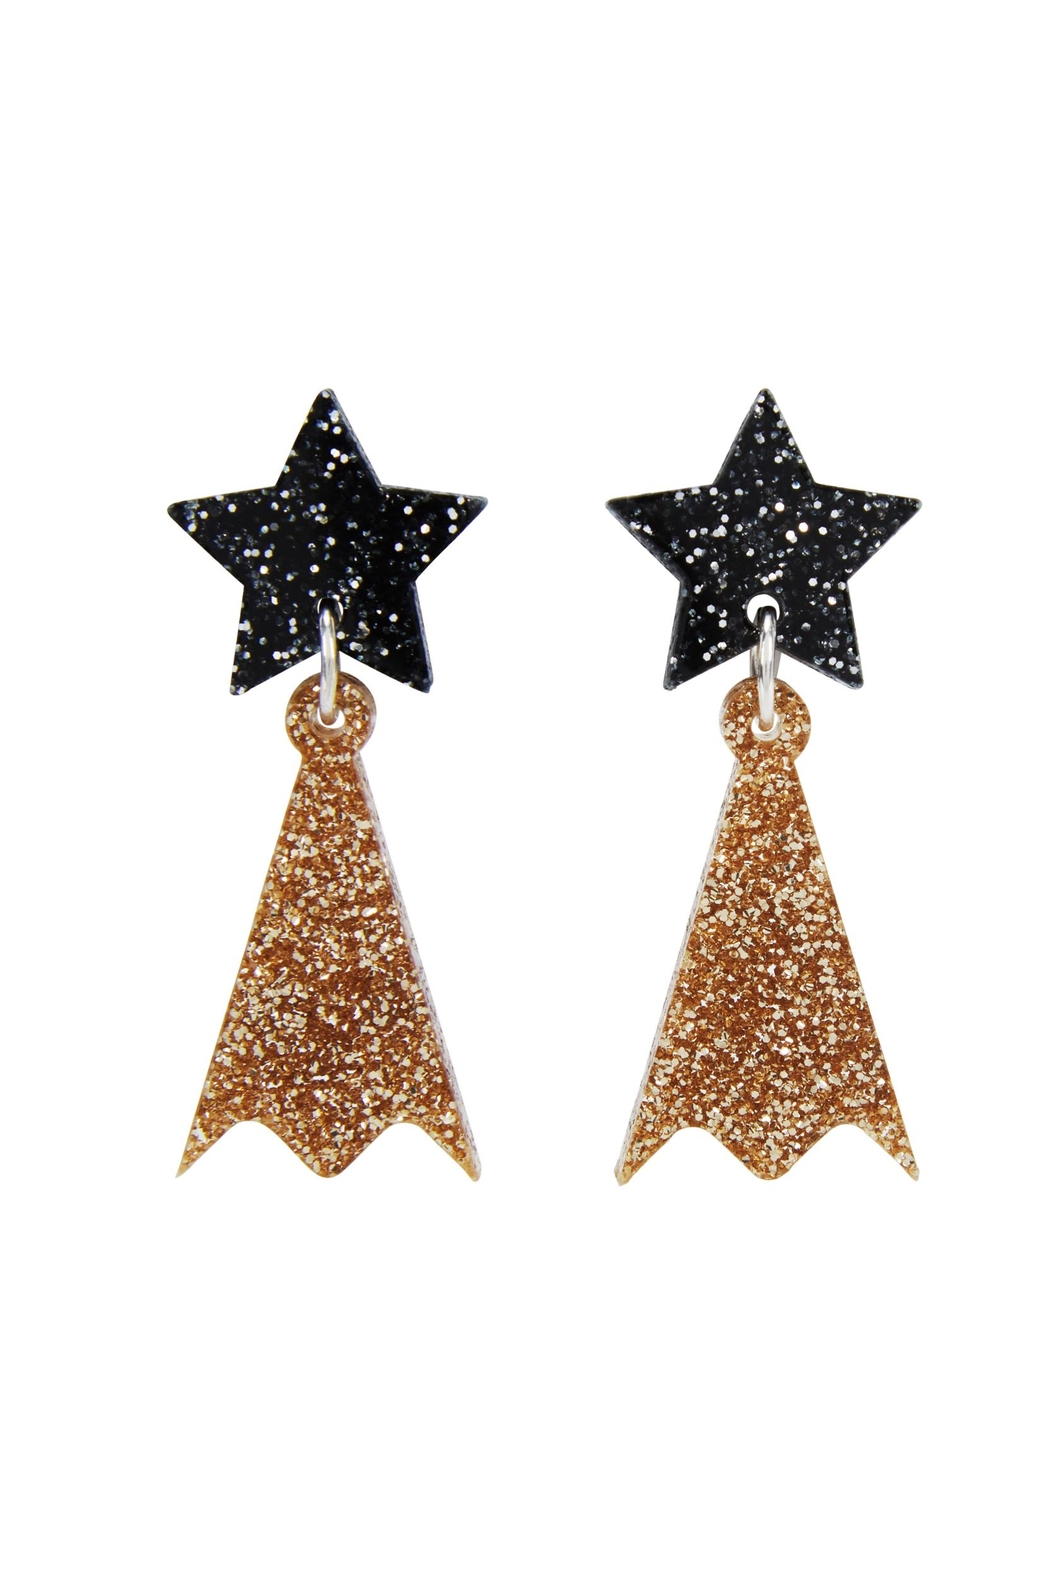 cd93b6015 Little Moose Shooting Star Earrings from Glasgow by Pink Poodle ...